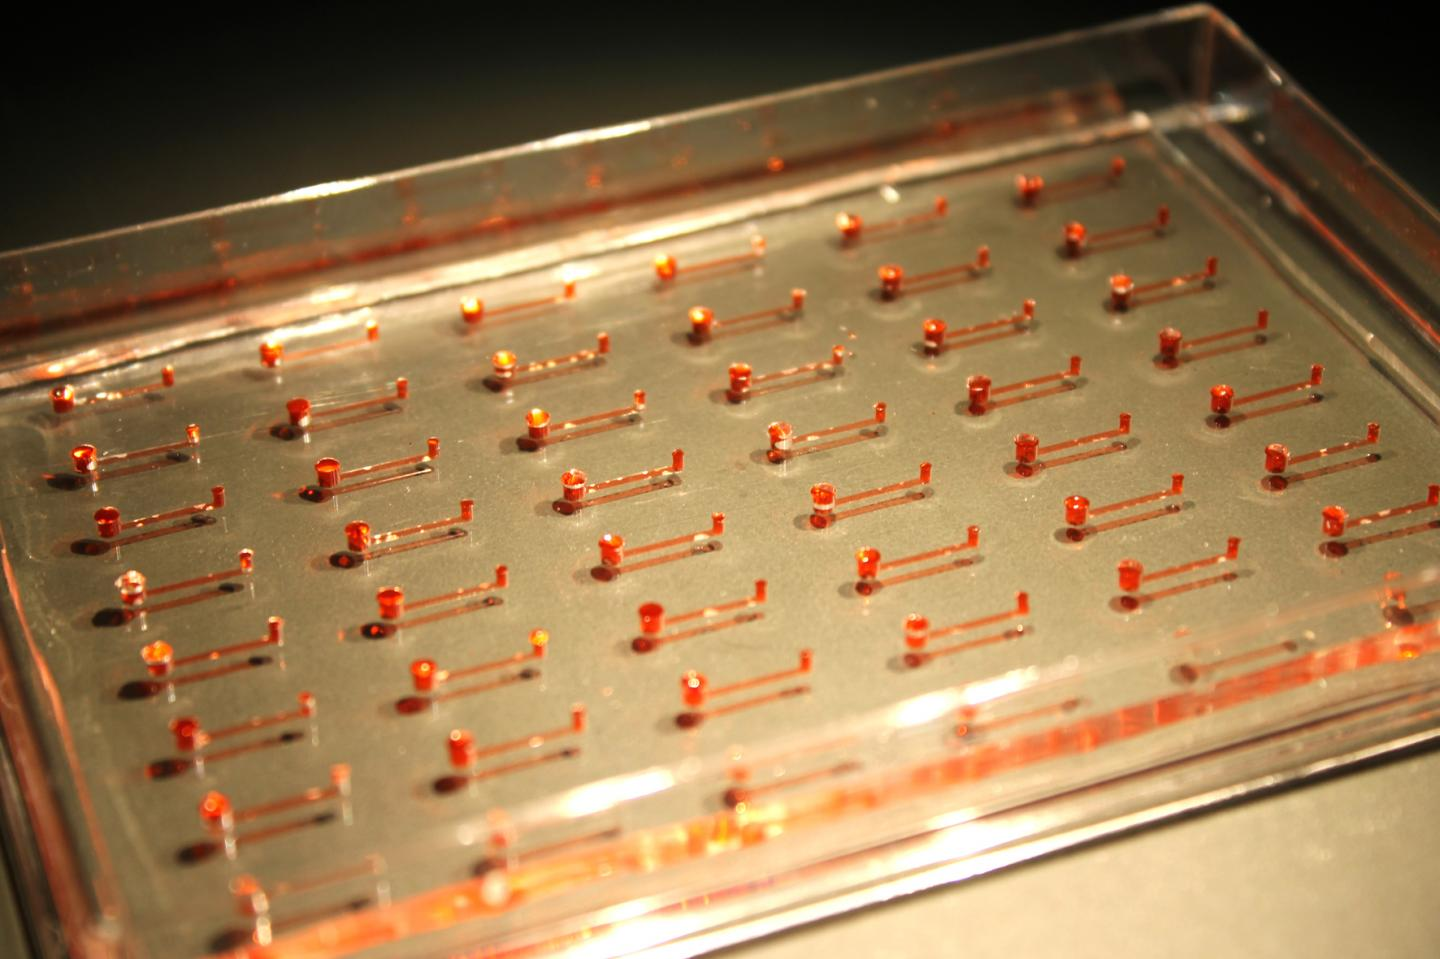 This is a prototype of the new microfluidic device for hPSCs, consisting of narrow channels embedded in silicon rubber. [iCeMS/Kamei]